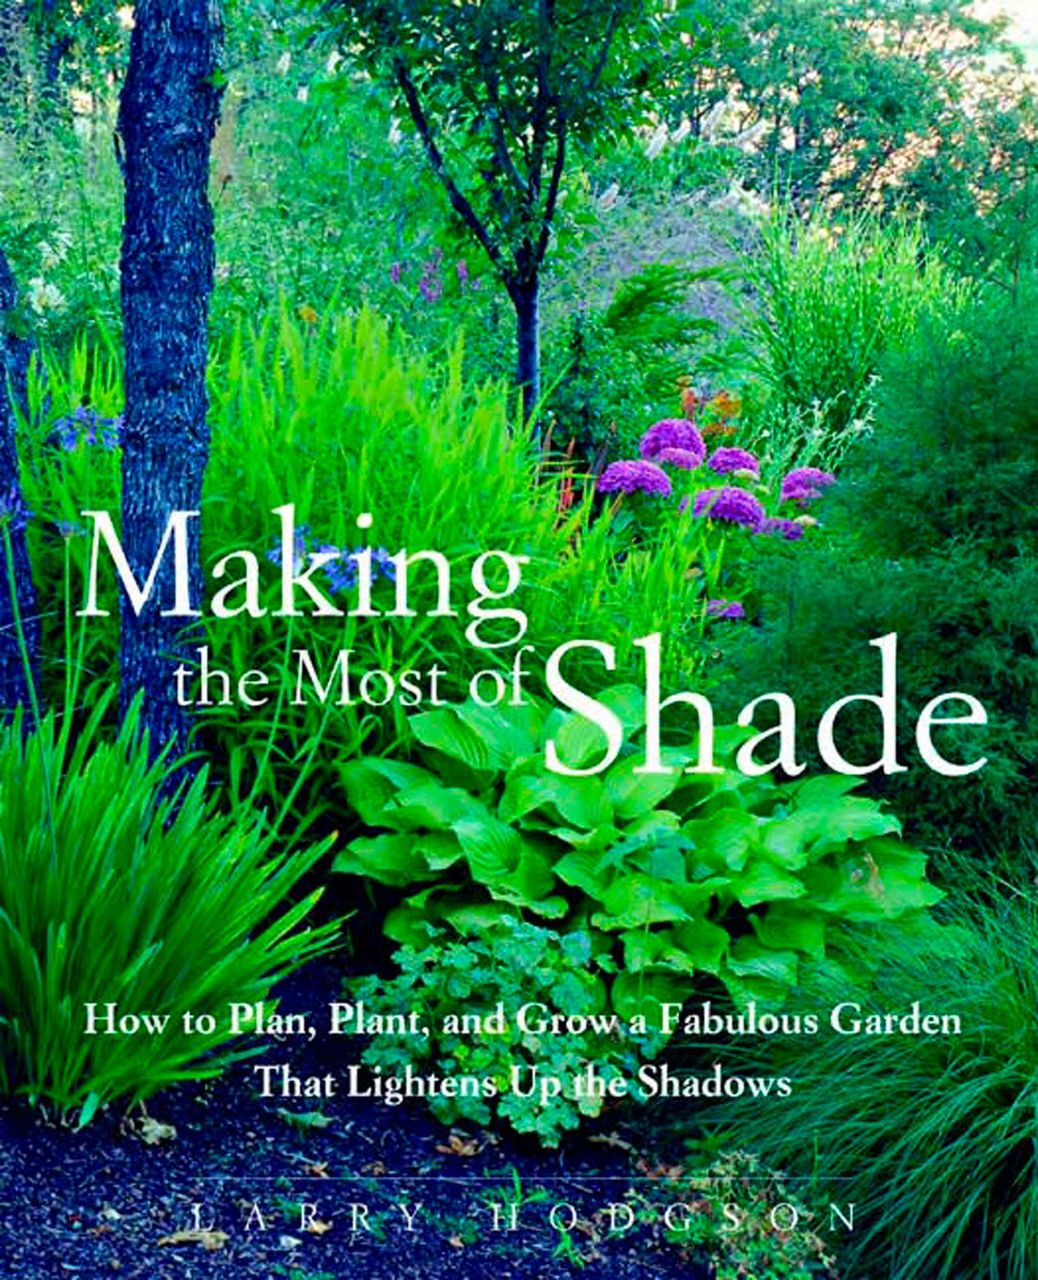 Making the Most of Shade by Larry Hodgson